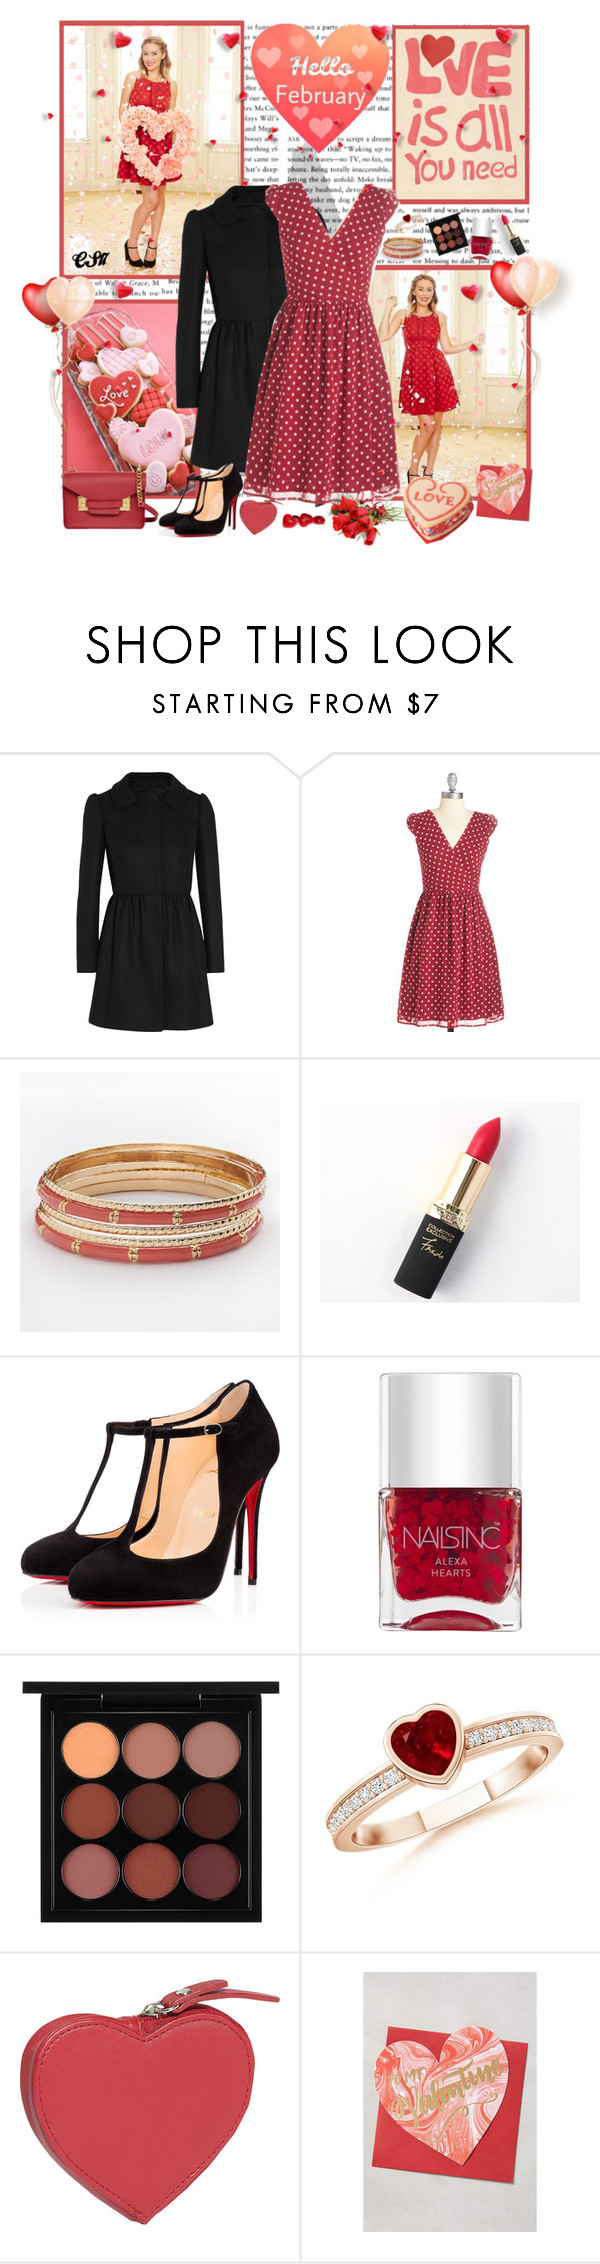 """Fall in Love with Lauren Conrad for February Birthdays"" by shiningstars17 ❤ liked on Polyvore featuring RED Valentino, LC Lauren Conrad, L'Oréal Paris, Christian Louboutin, Nails Inc., MAC Cosmetics, Clava, Sophie Hulme, women's clothing and women"